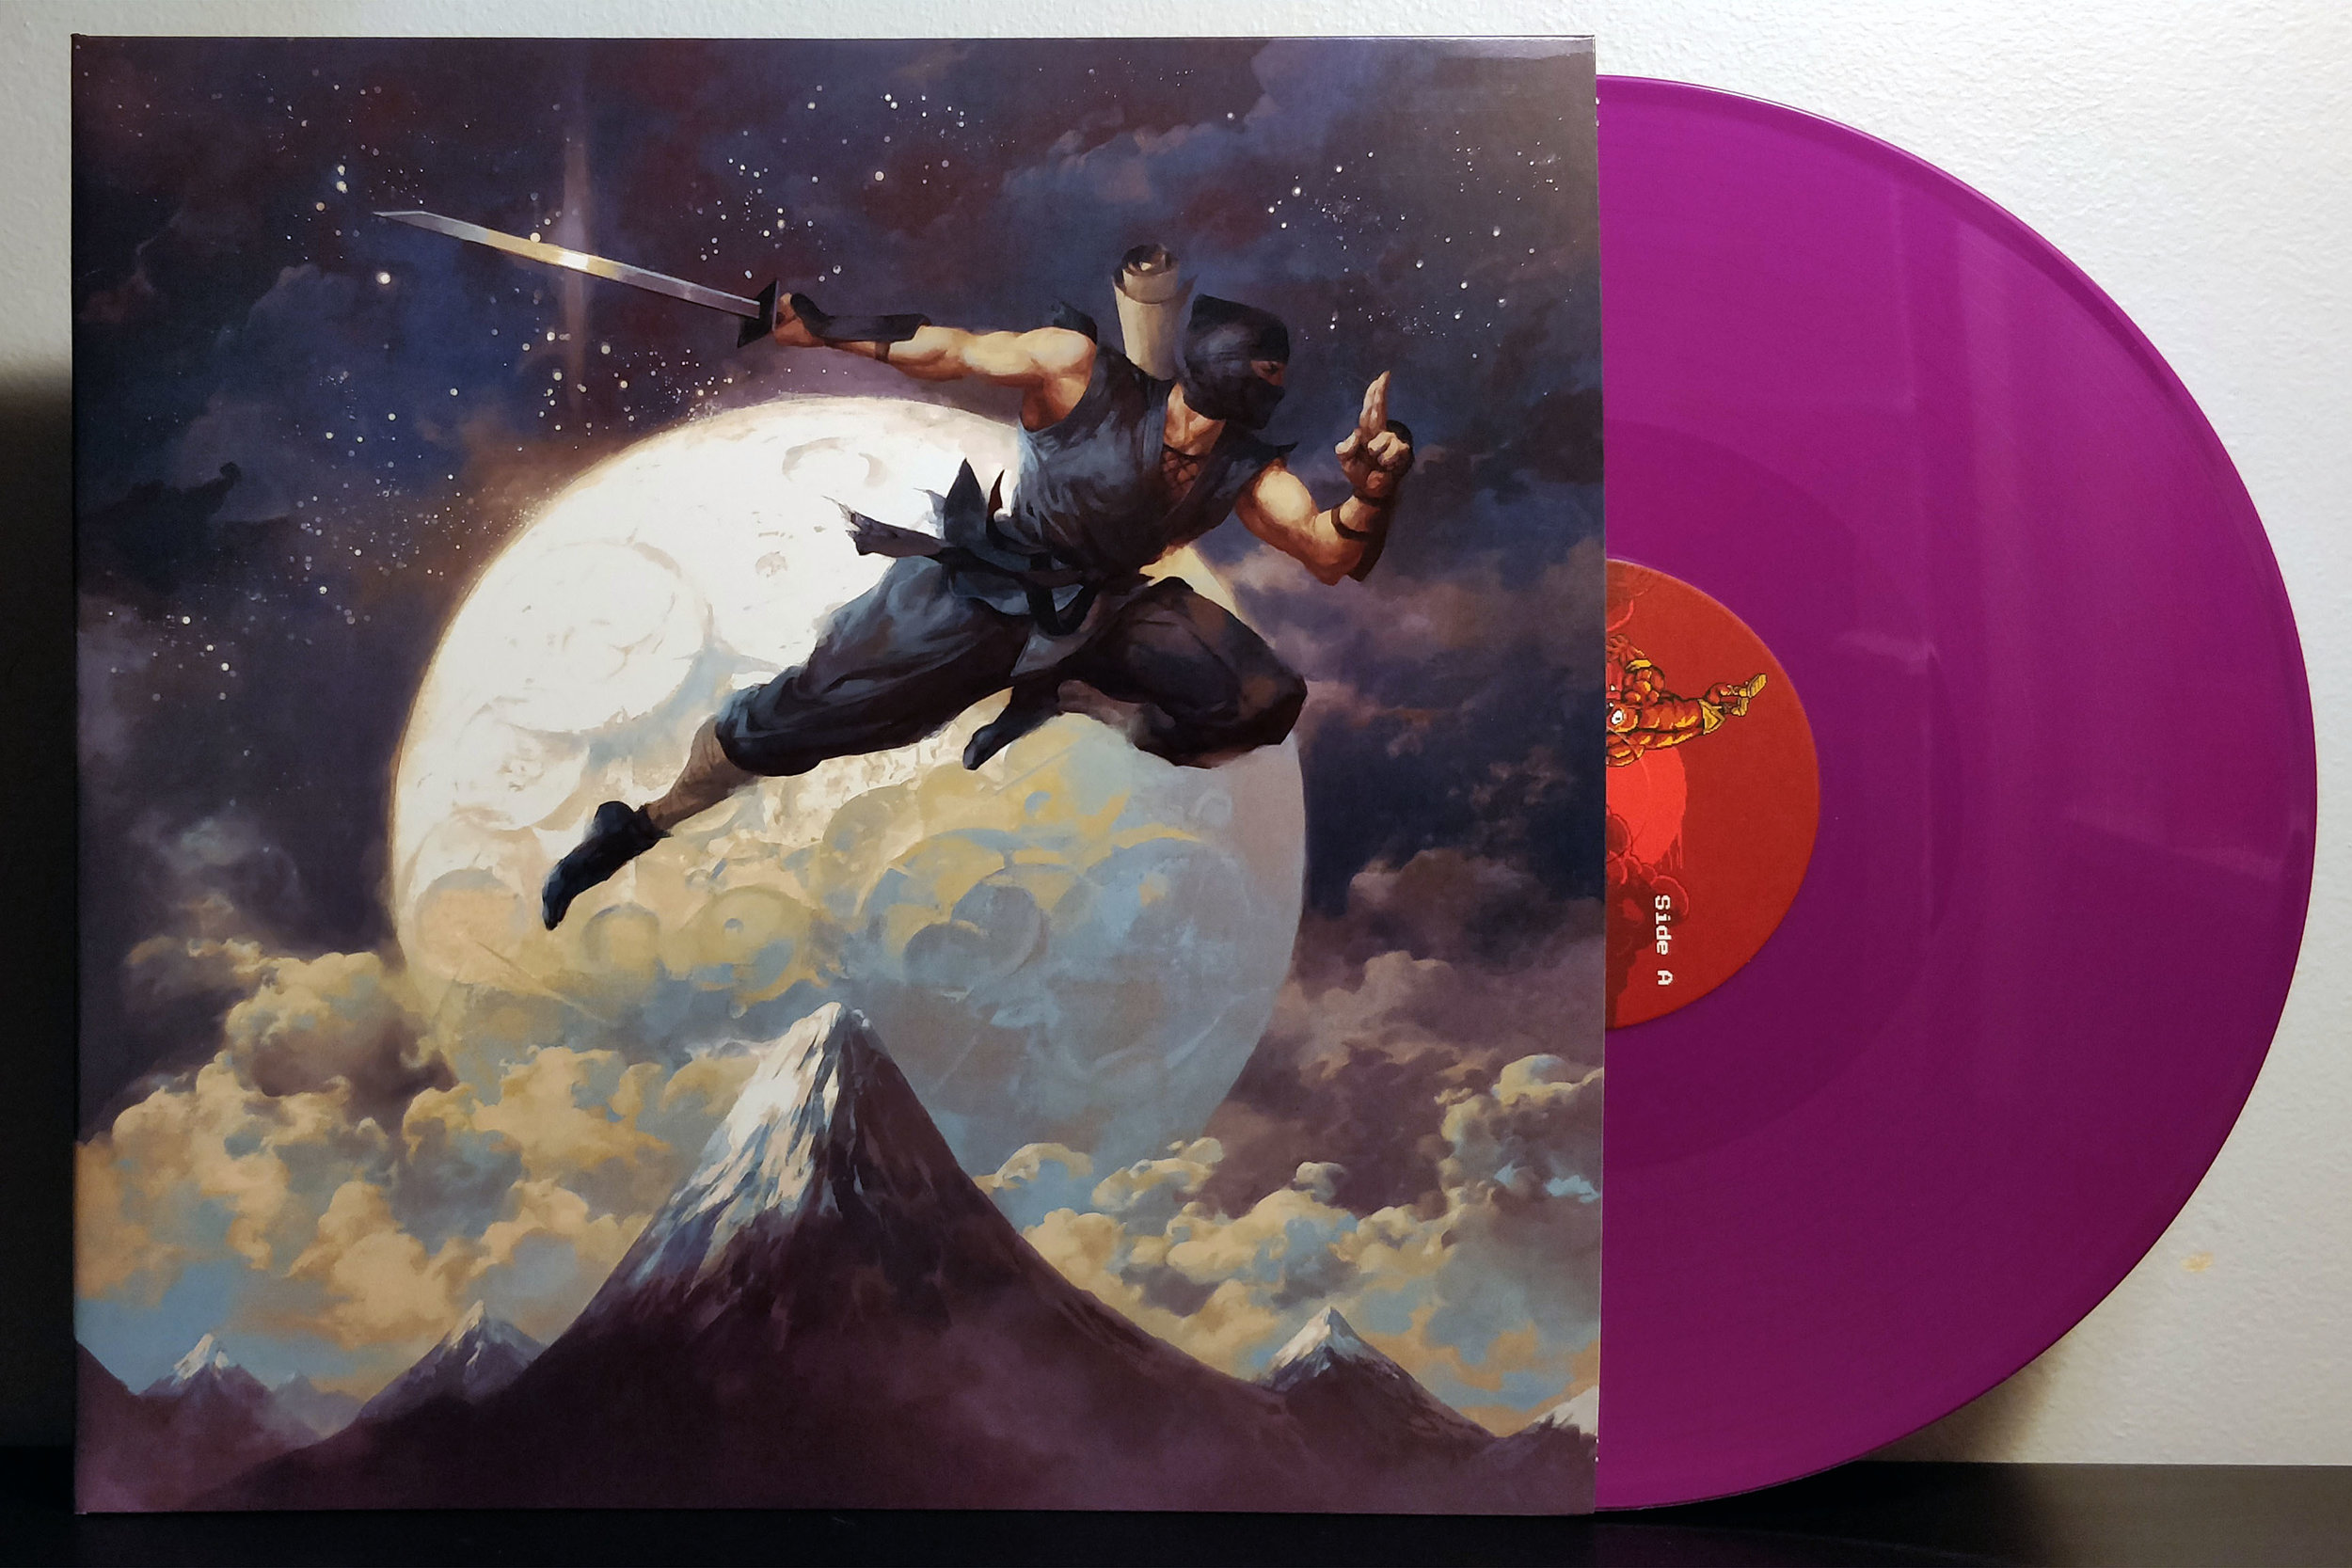 The Messenger by Rainbowdragoneyes pressed on Past and Future vinyl by iam8bit